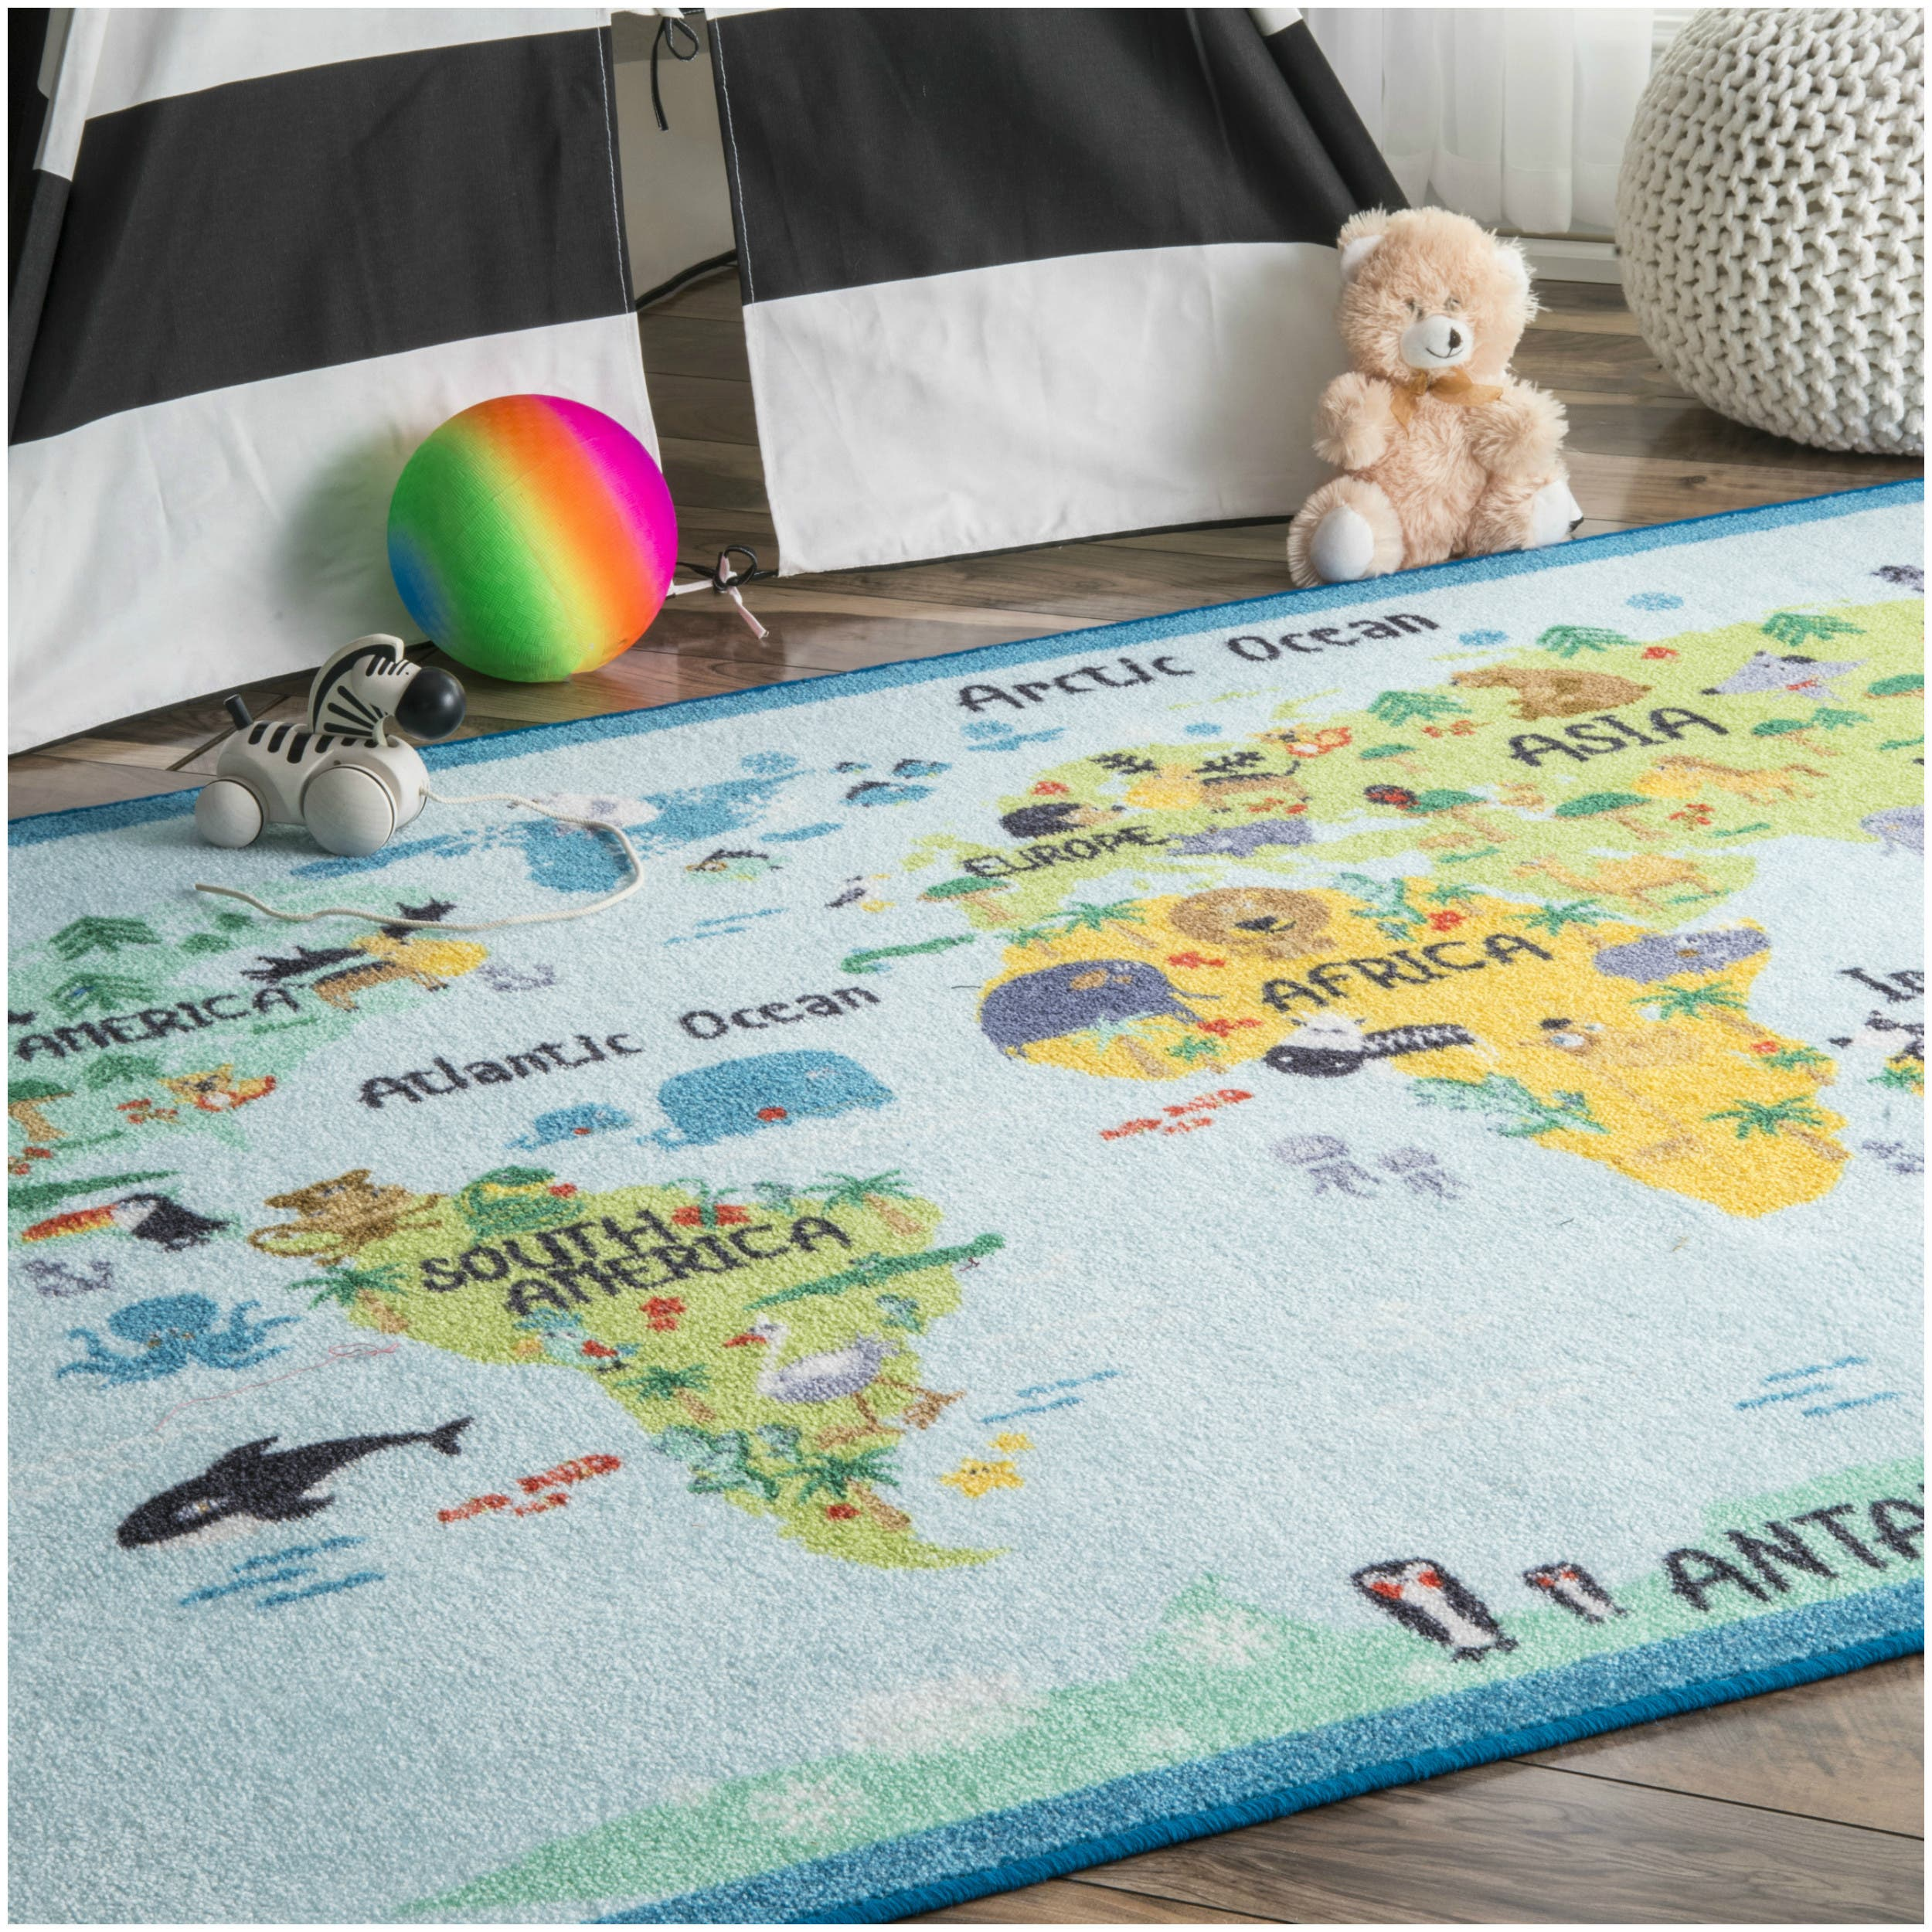 World Map Rug Costco: Buy 5x8 - 6x9 Rugs Online At Overstock.com